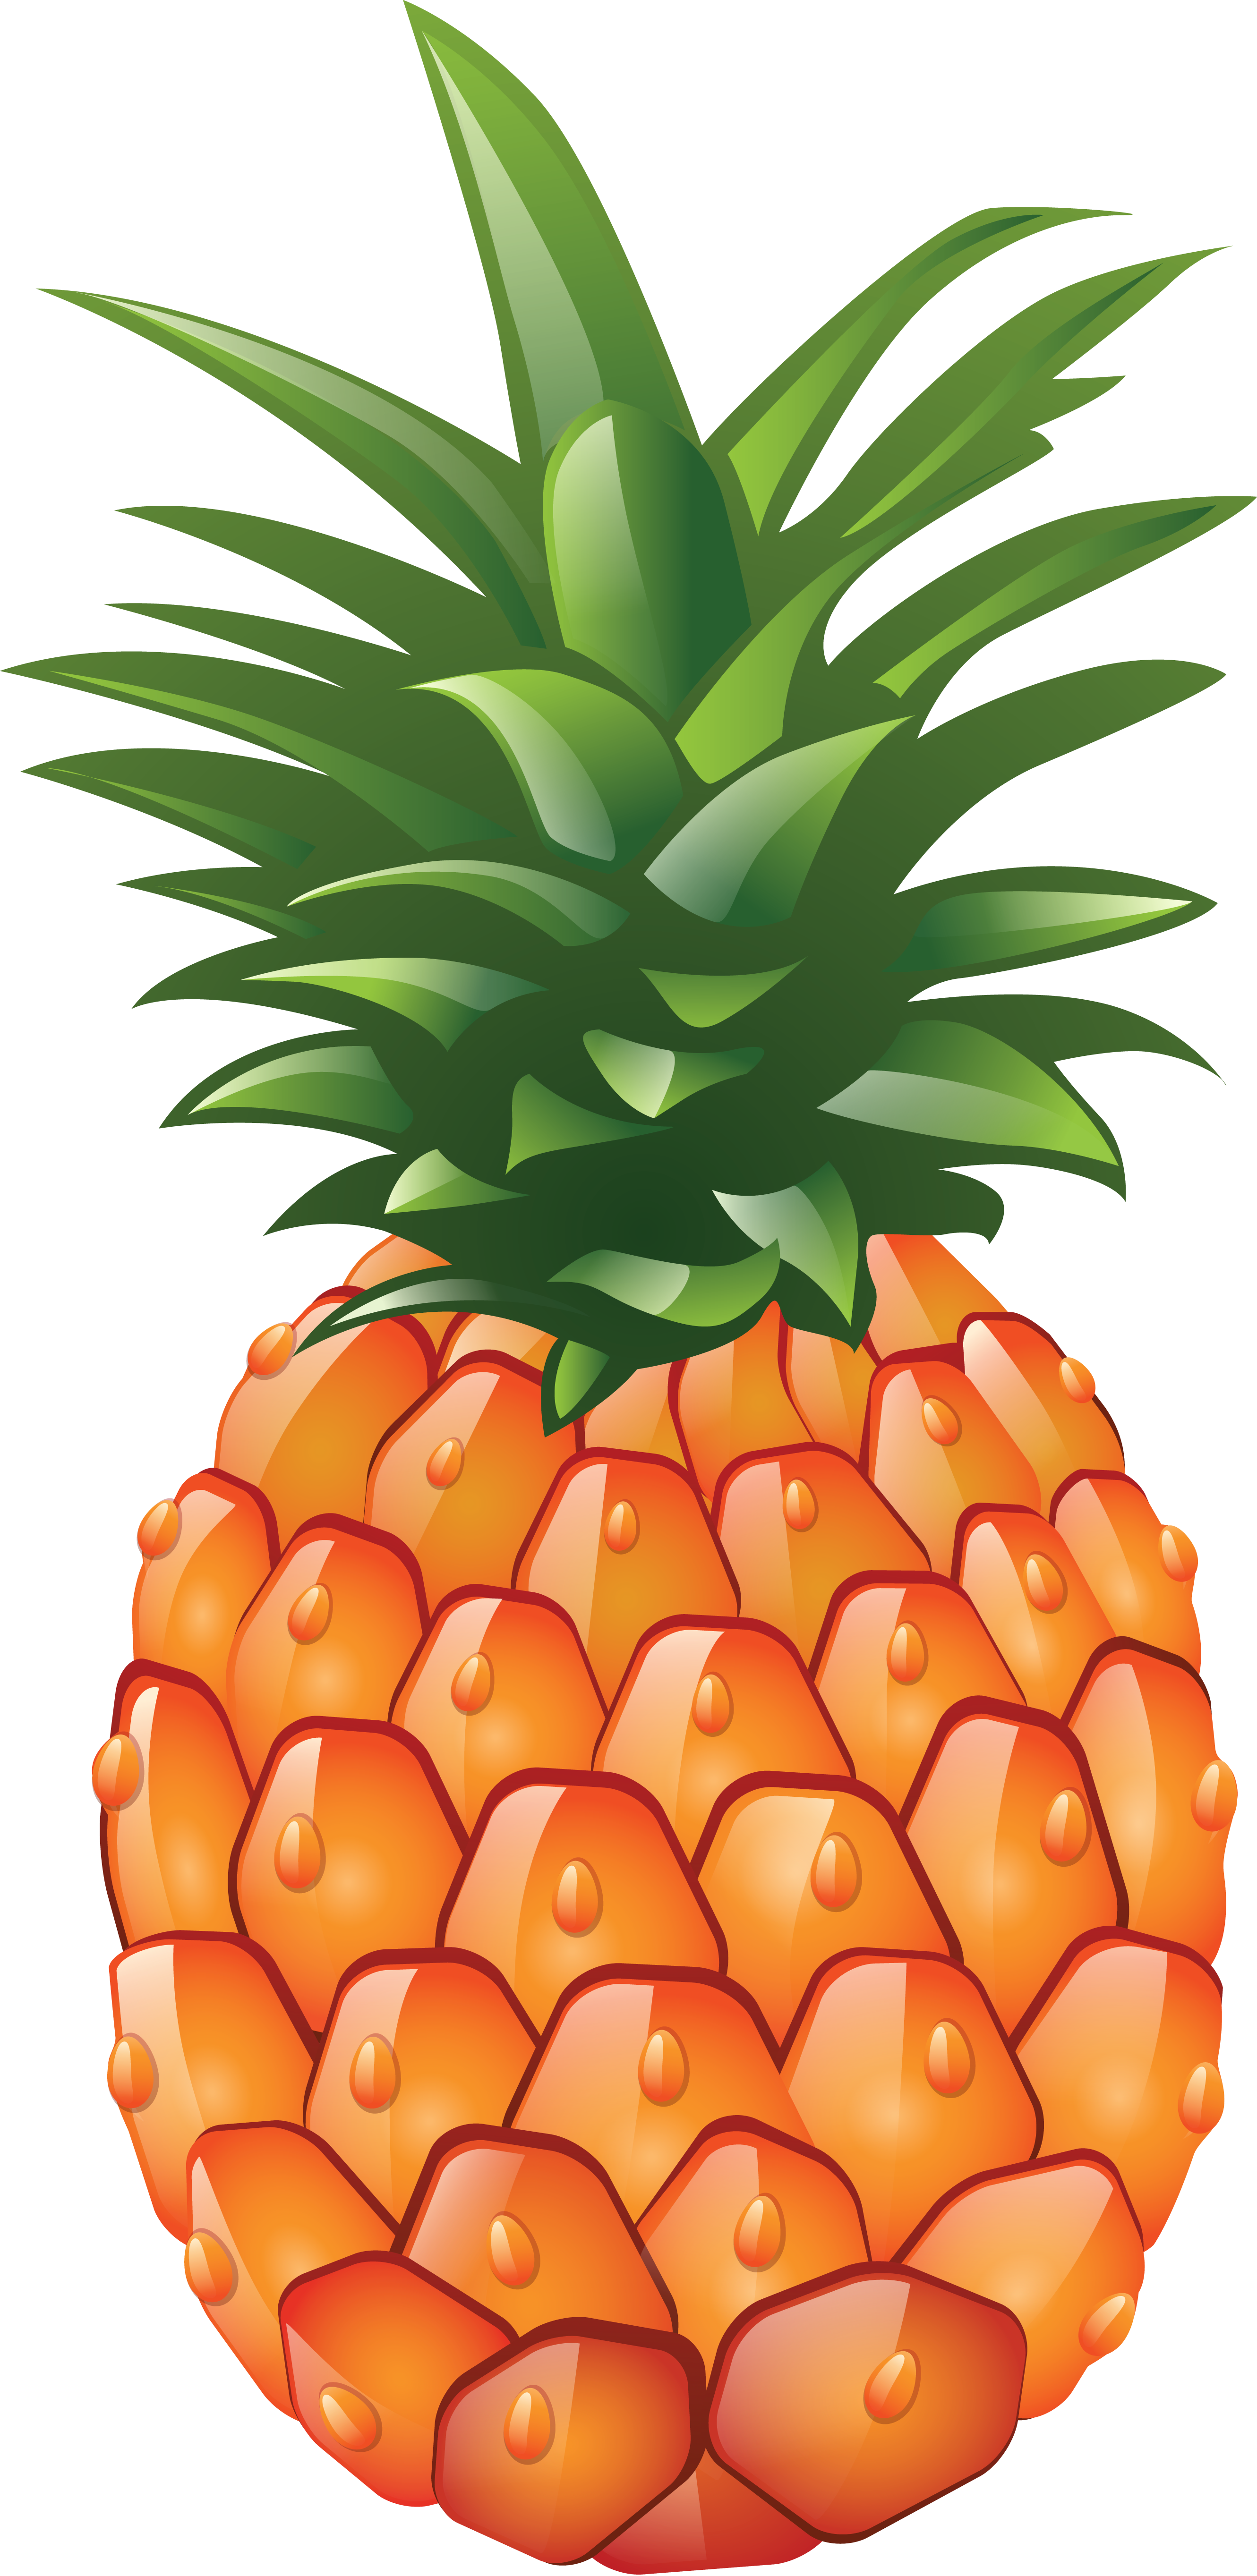 pineapple png image download cliparts #18437